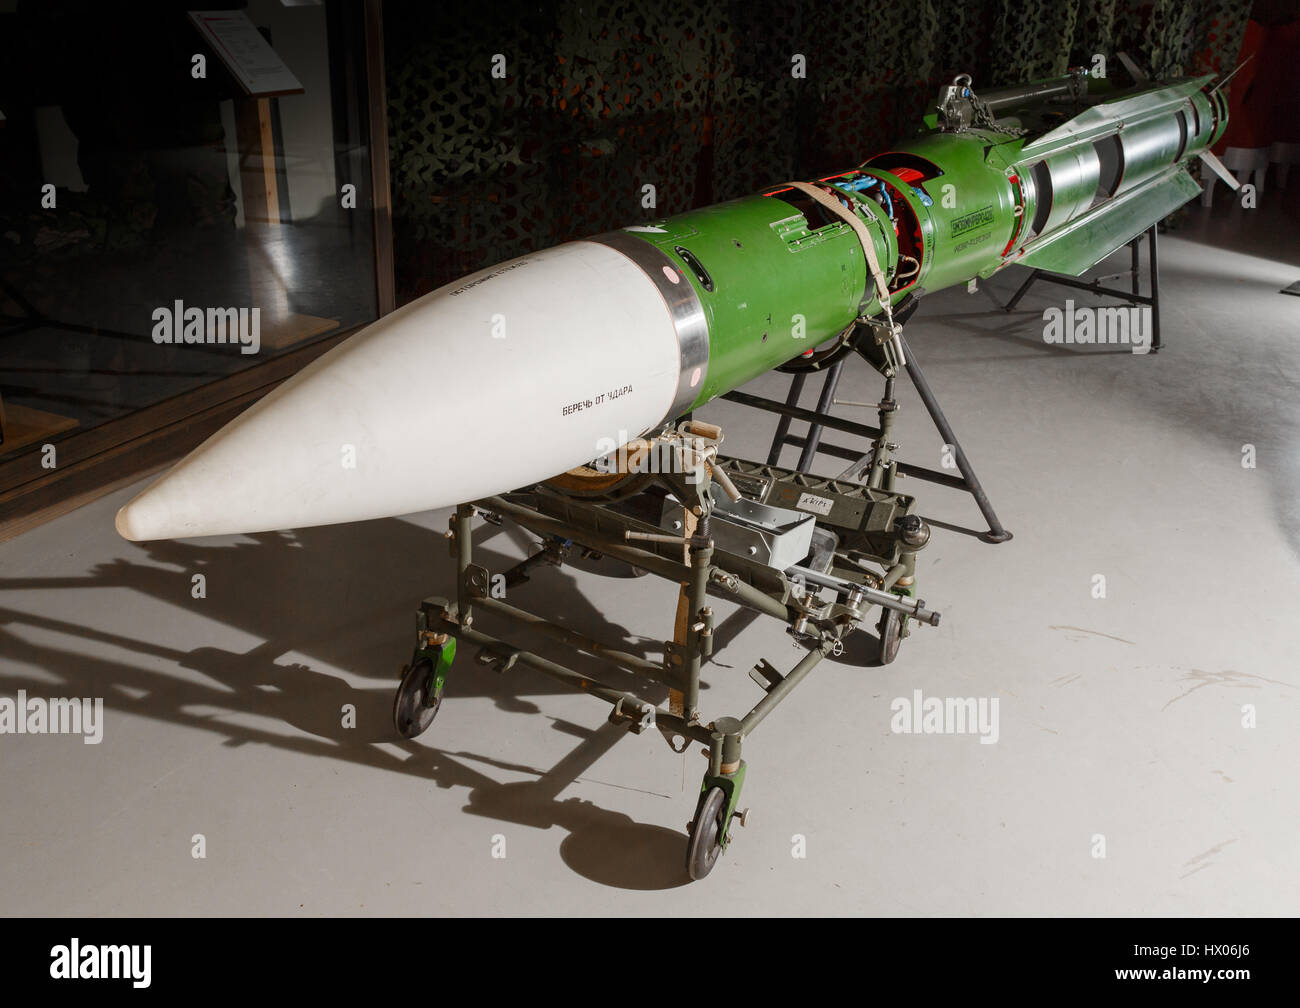 Instruction version of the Buk M1 surface-to-air missile on display at the Anti-Aircraft Museum in Tuusula, Finland. - Stock Image